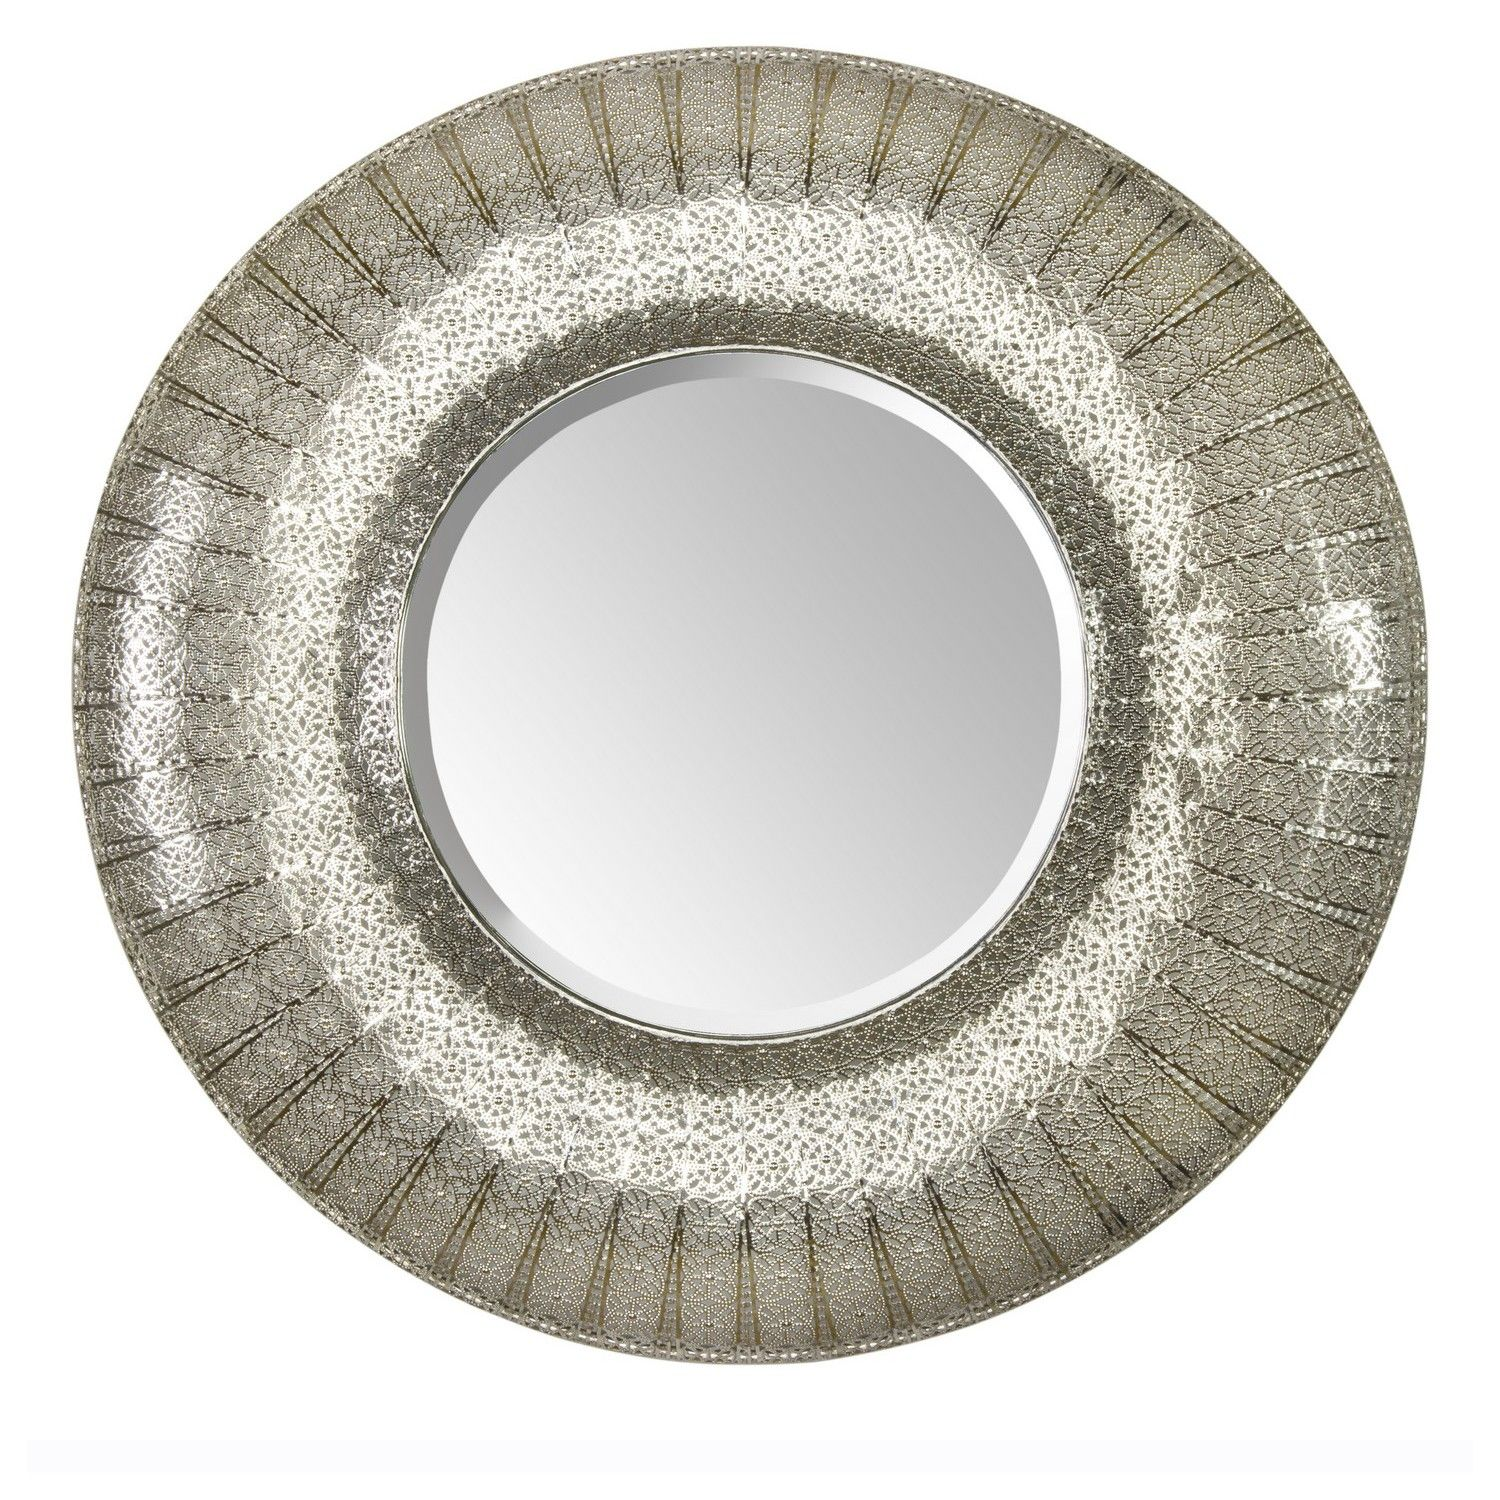 buy round moroccan mirror mirrors the range bathroom. Black Bedroom Furniture Sets. Home Design Ideas